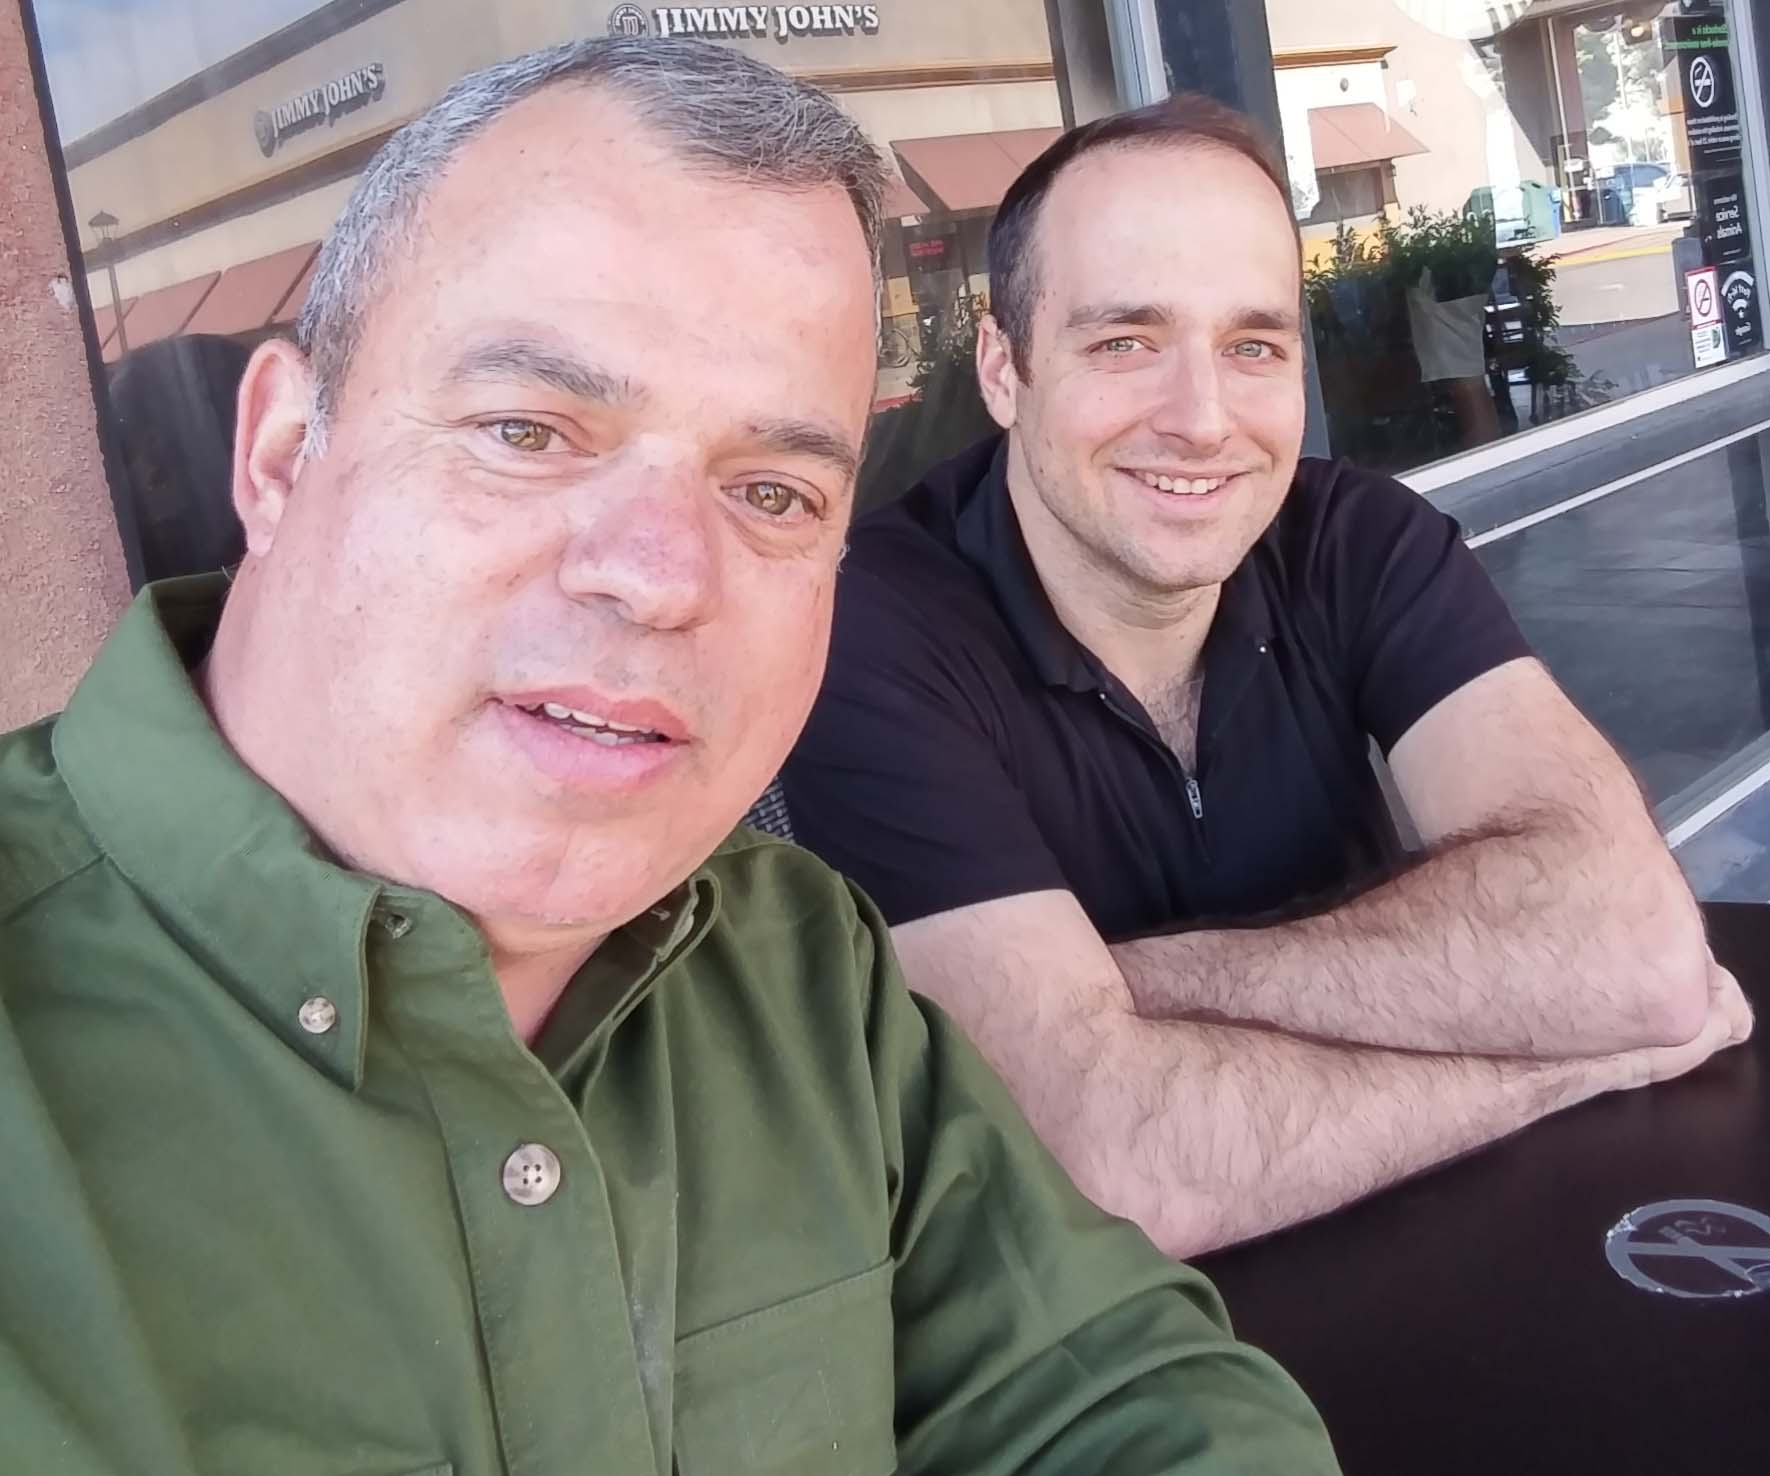 Video - Nick Giammarino Meets Rich Morris (American Contractor) Nick-Giammarino-American-Contractor-Rich-Morris